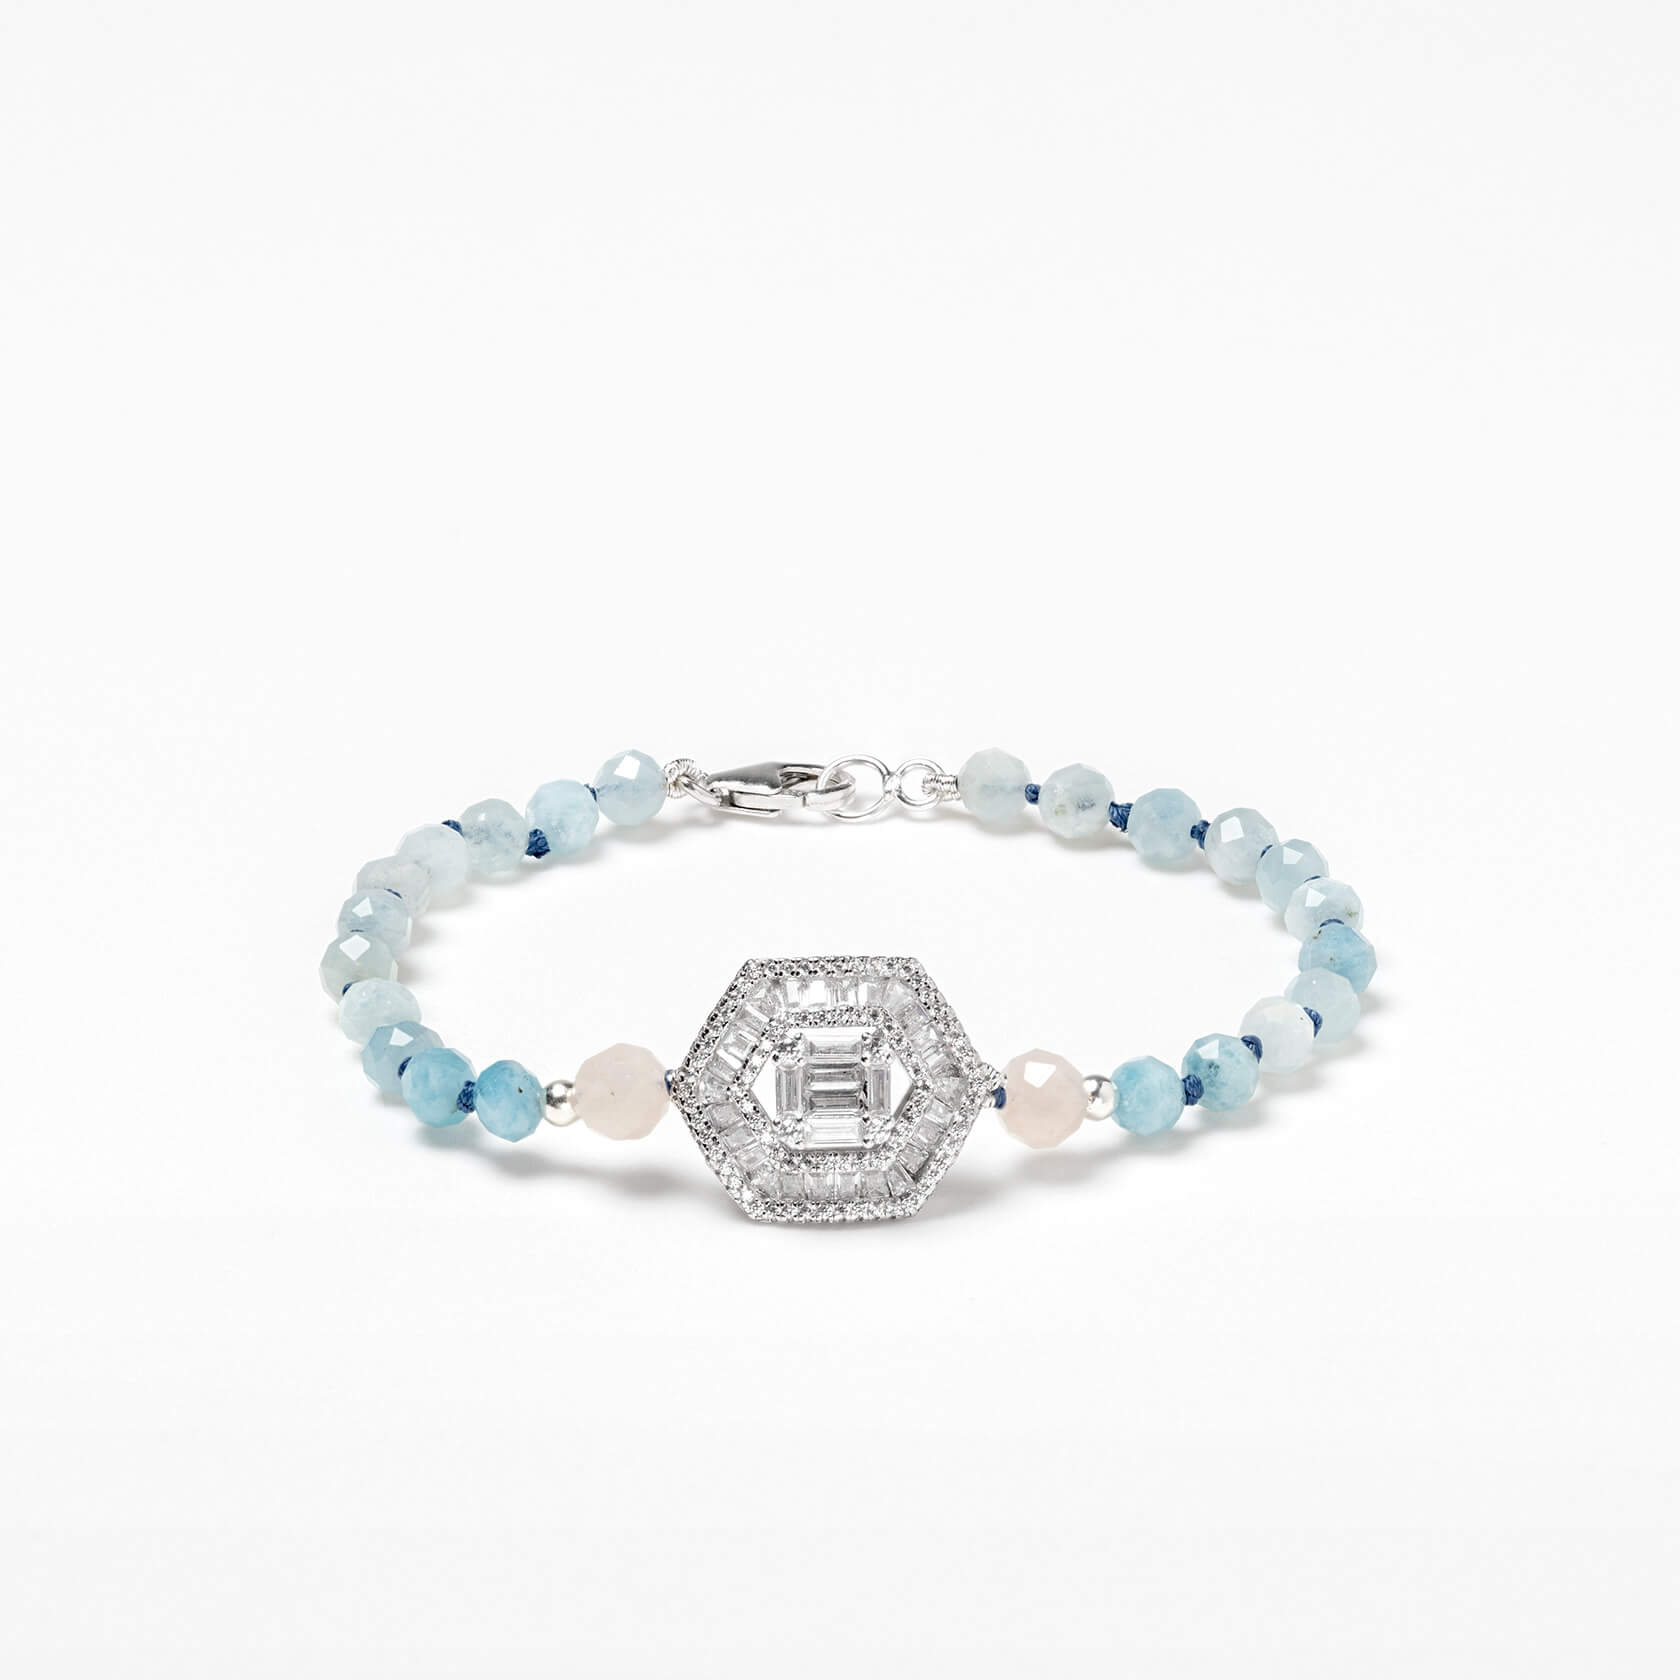 Hexagonal aquamarine bracelet